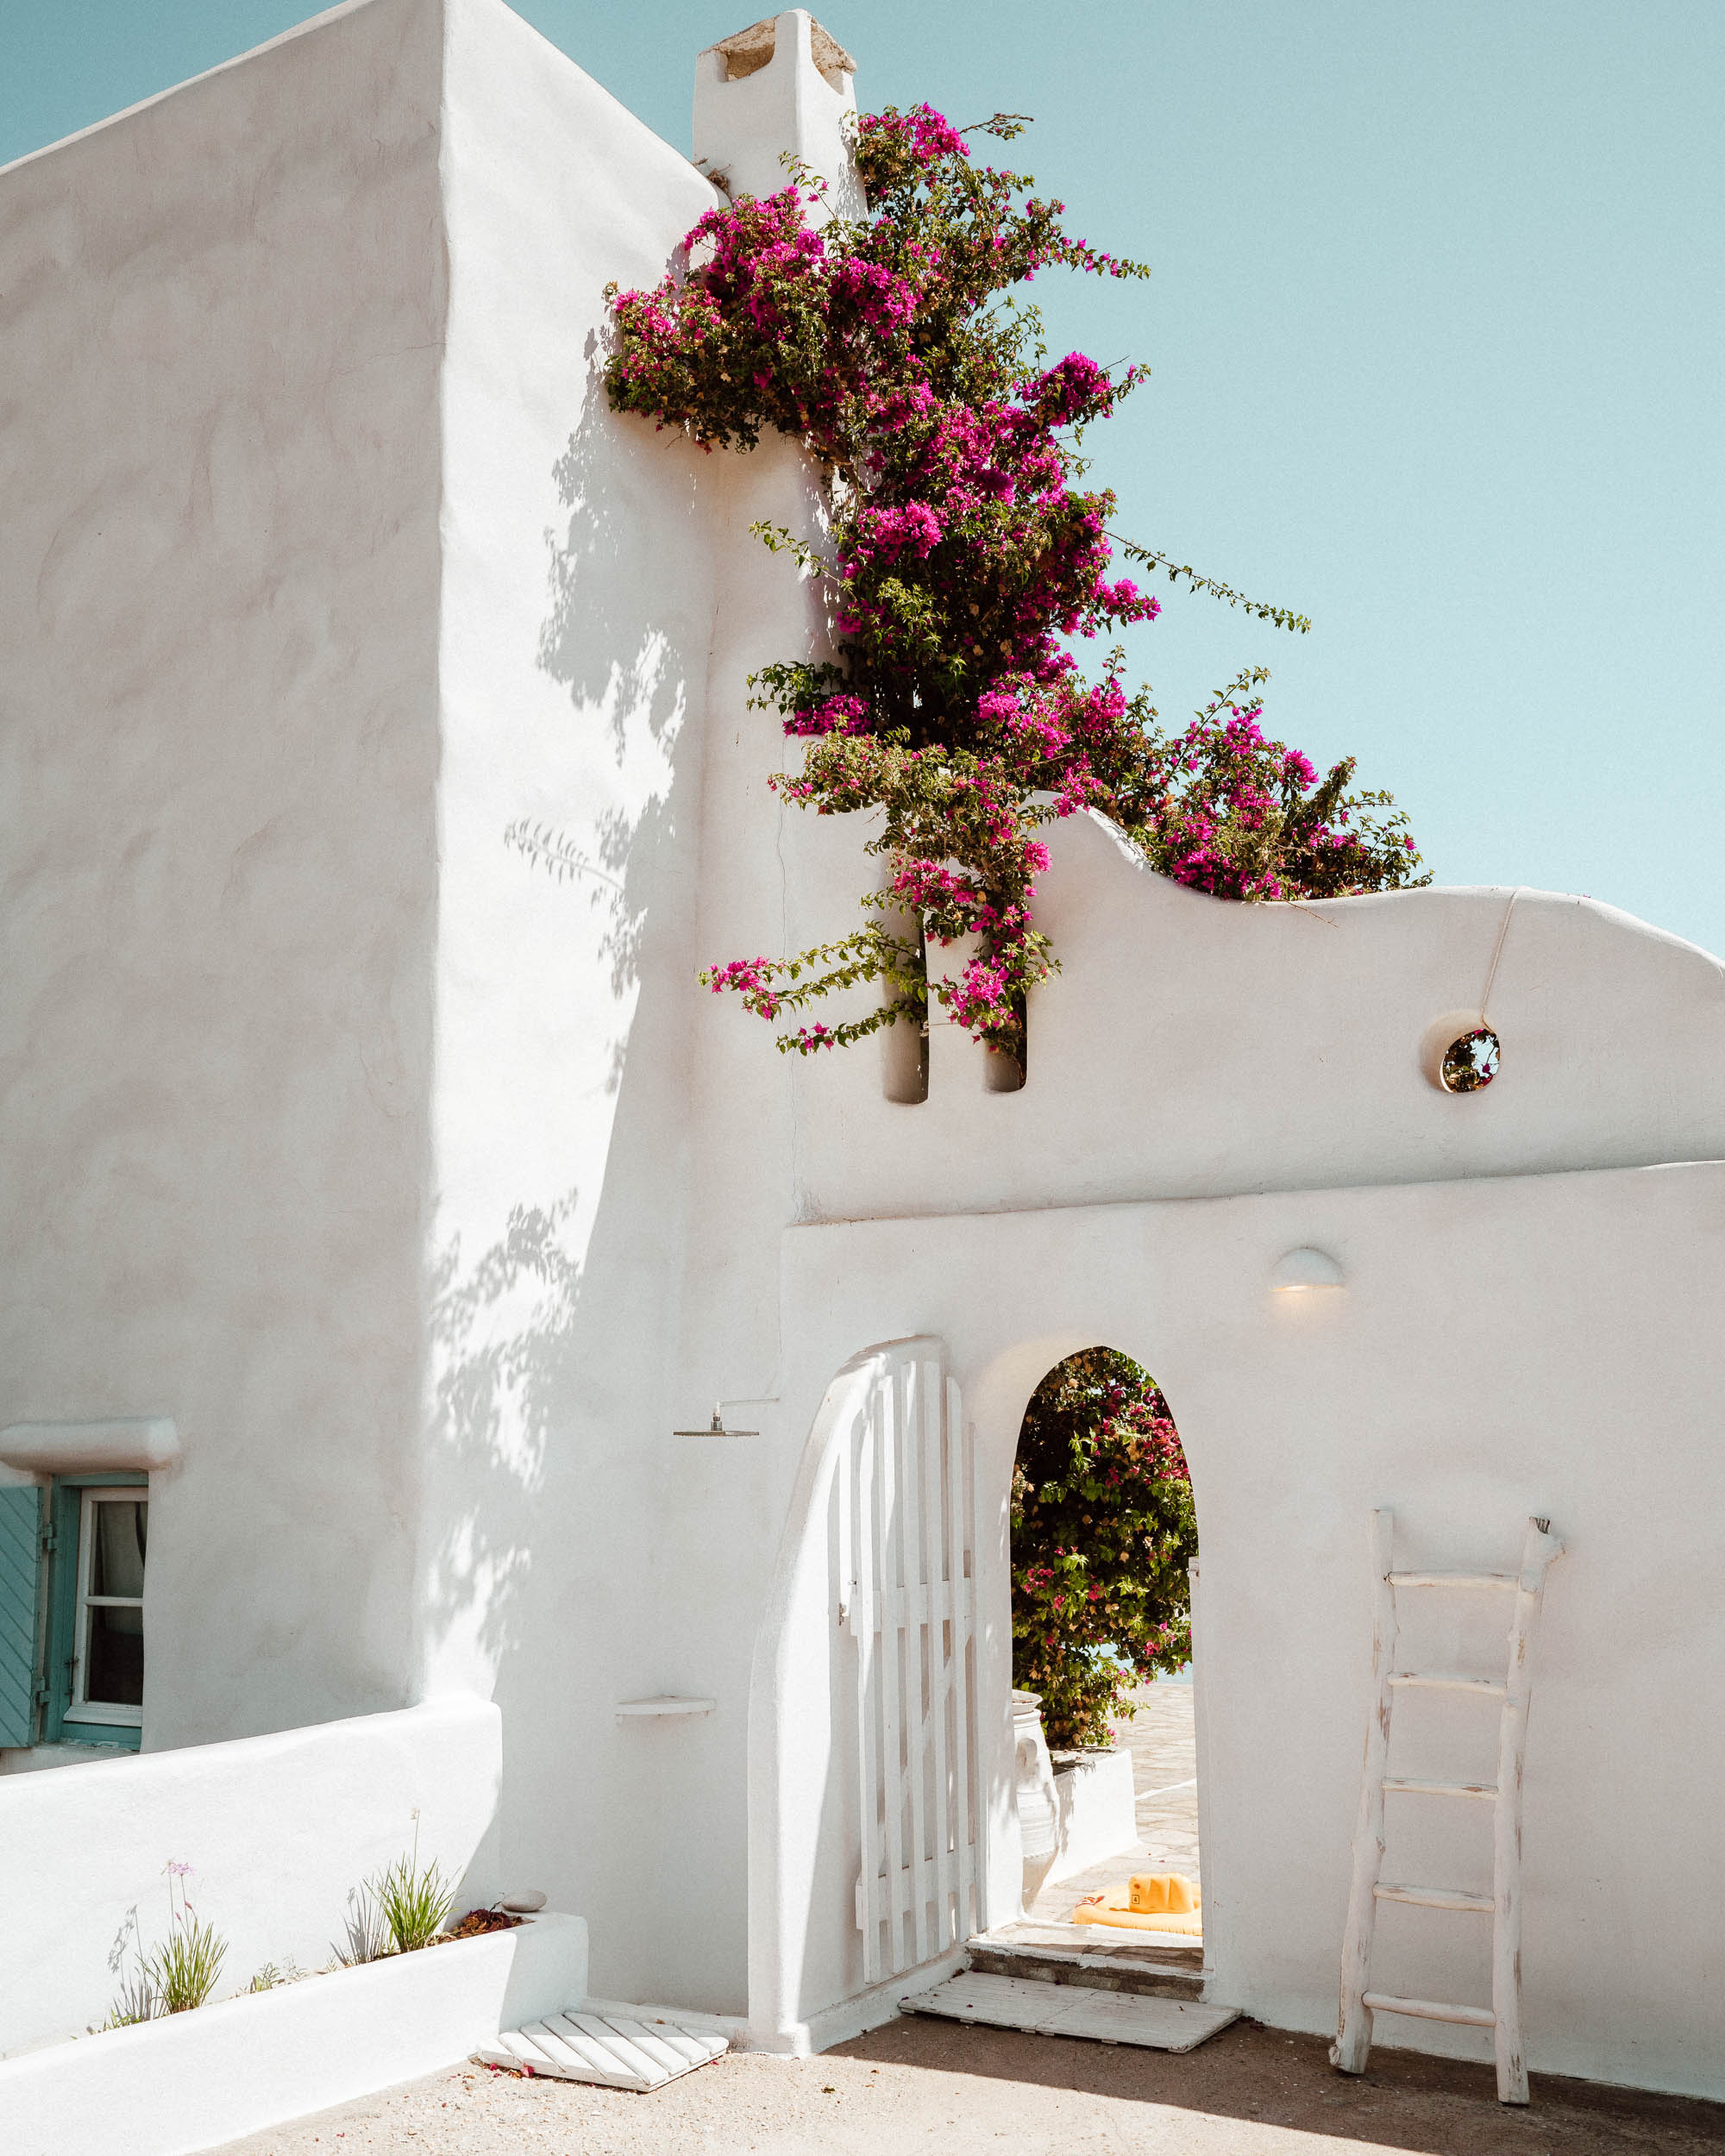 One of the best greek islands to visit - Paros via @finduslost